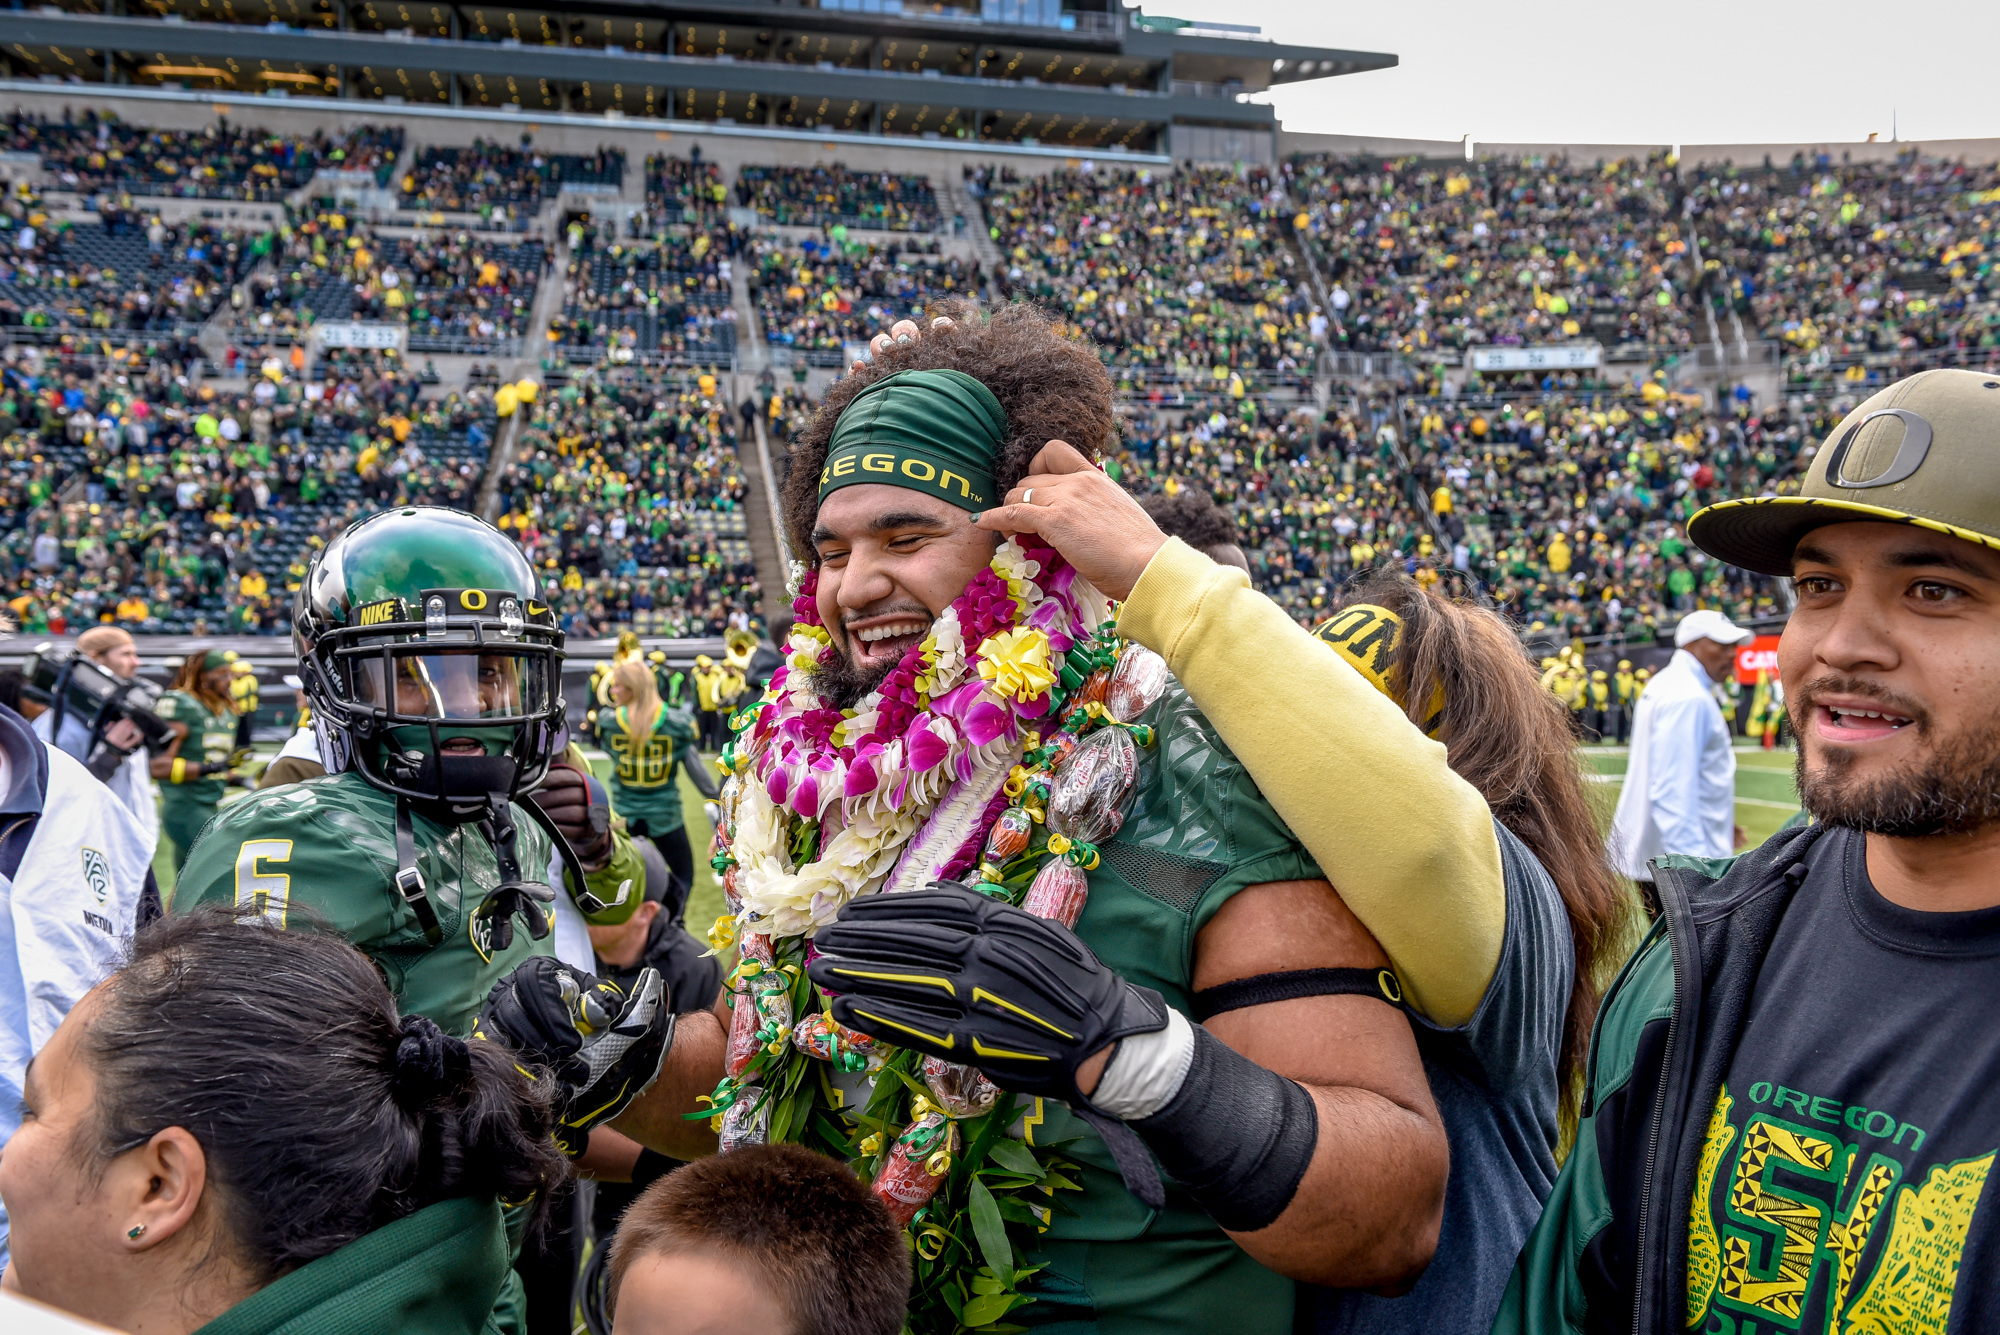 Stevens', the beloved Senior, last play at Autzen was a touchdown.